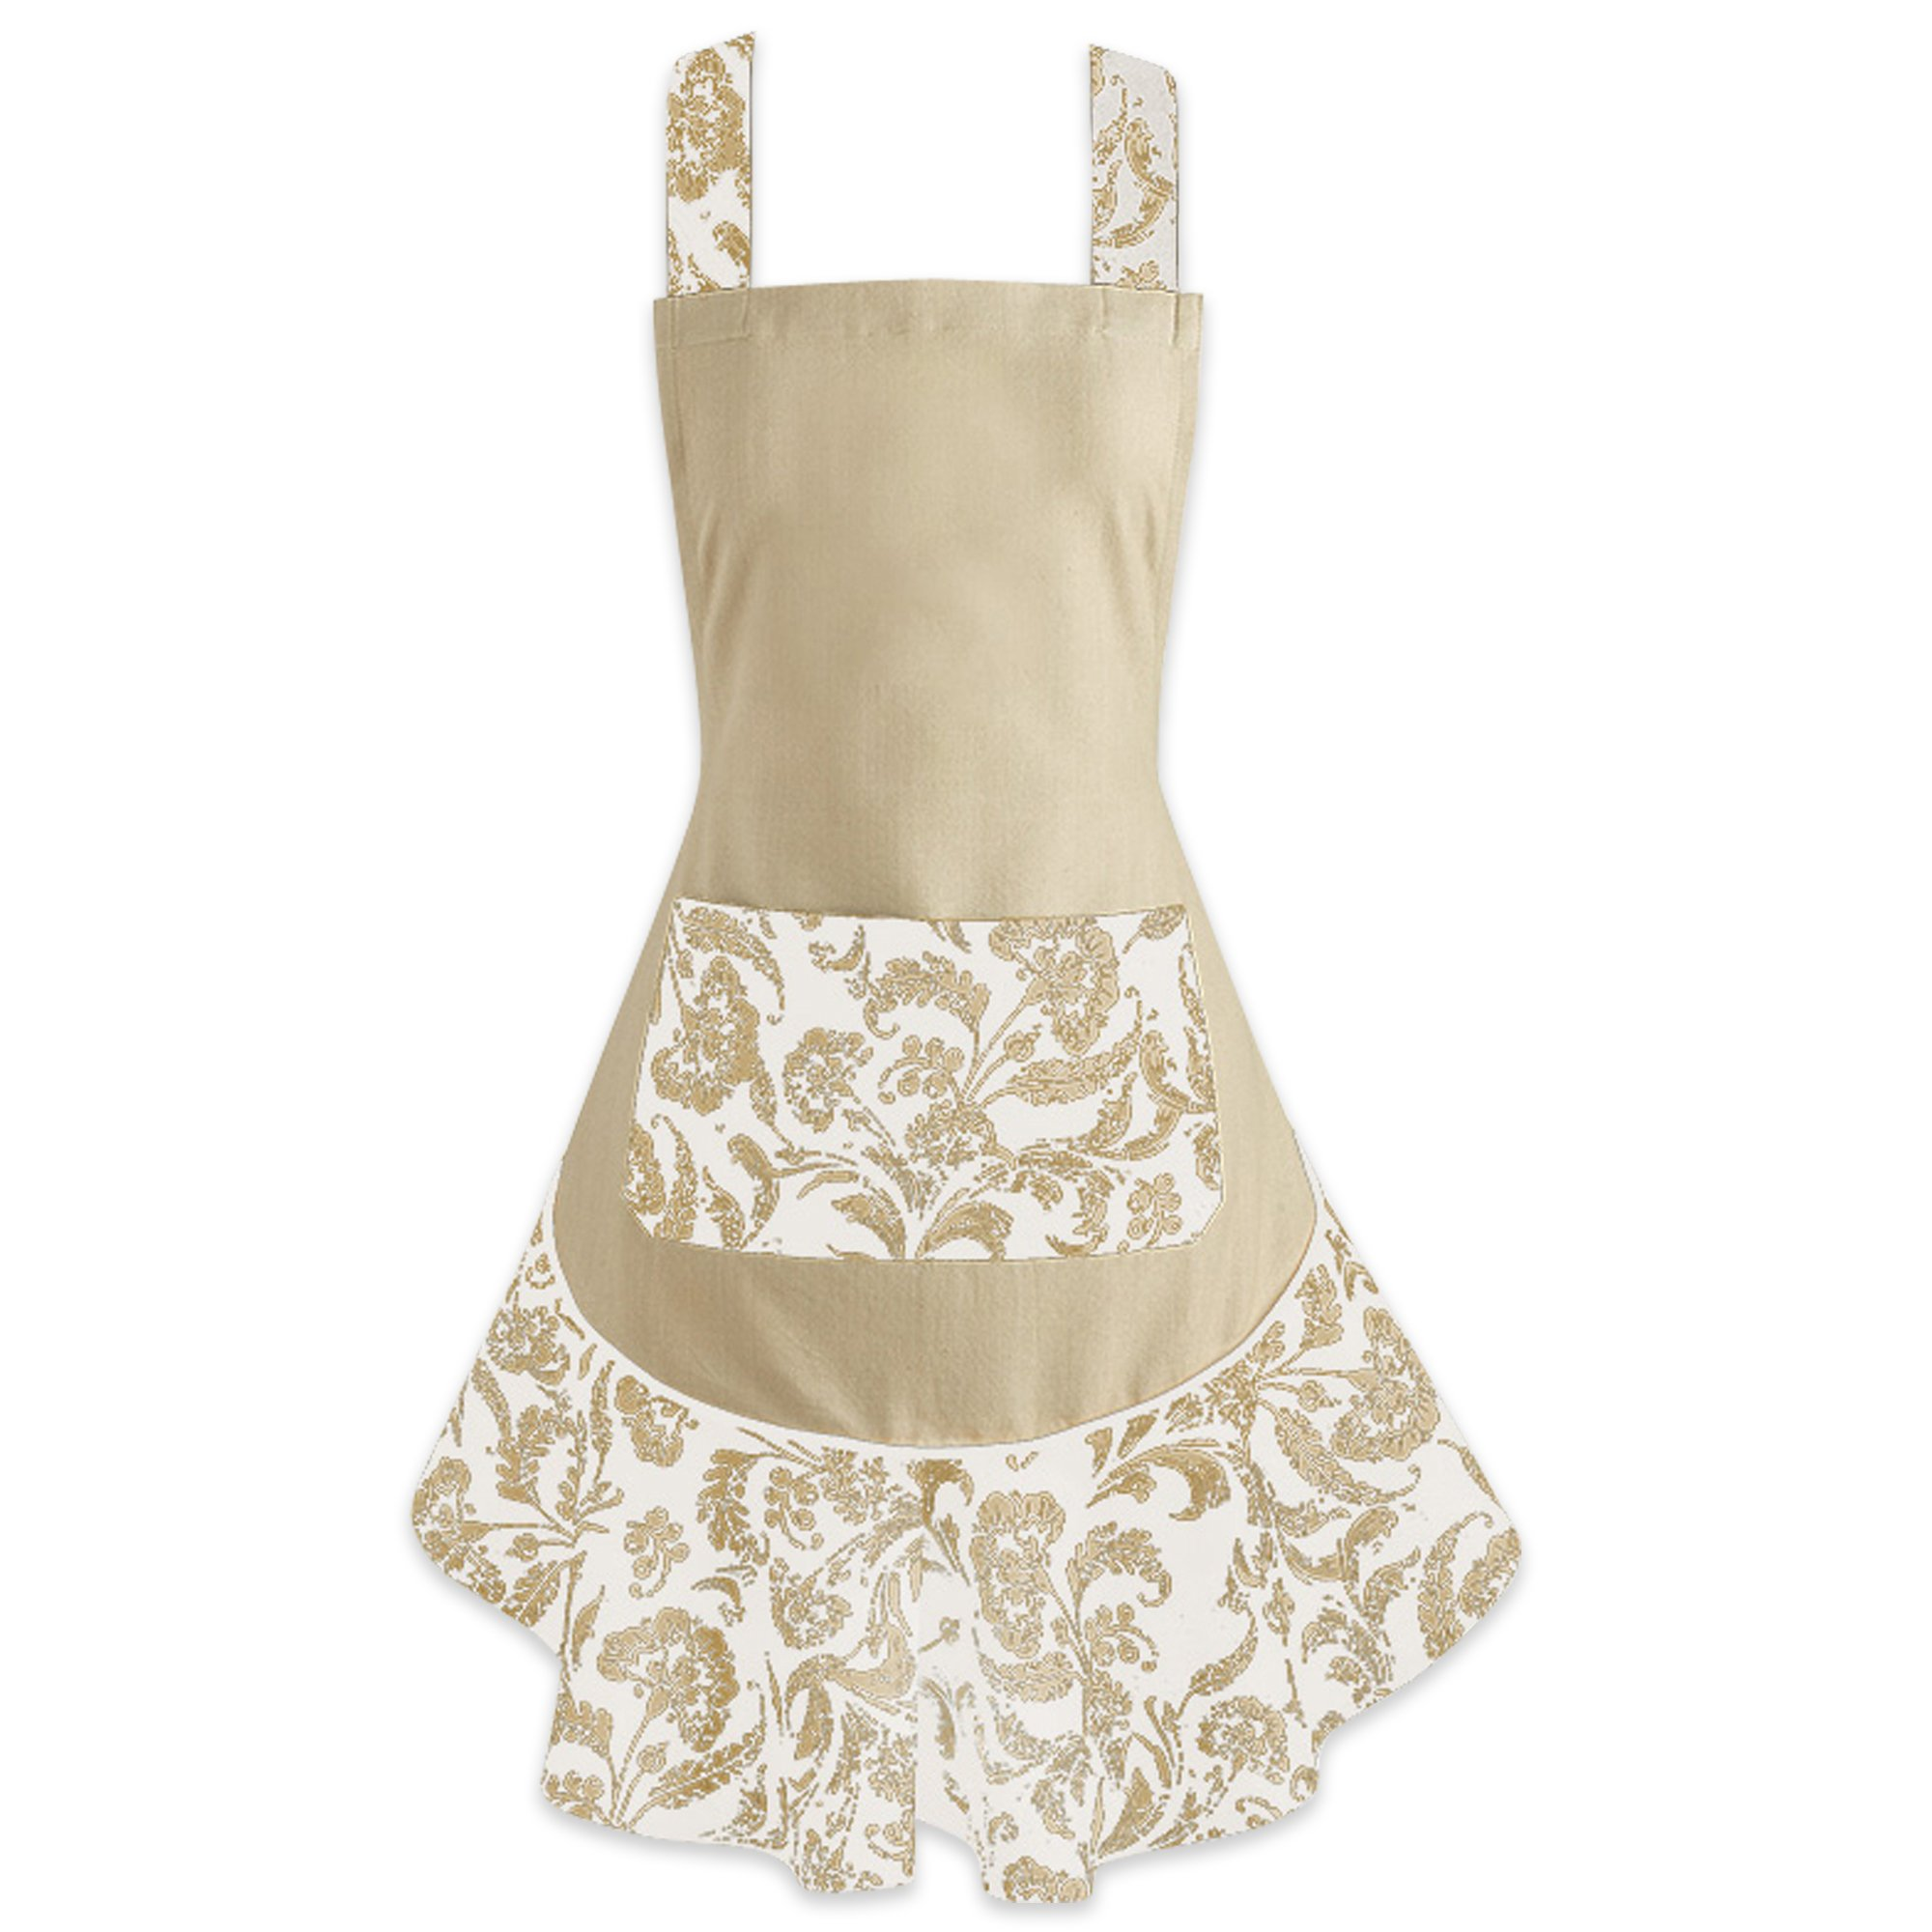 DII 100% Cotton, Fashion Floral Ruffle Ladies Women Apron, Kitchen Chef Apron, Adjustable Neck and Waist Ties, Front Pocket, Embroidery Area Available, Perfect for Gift, Cooking, Baking, Crafting- Taupe